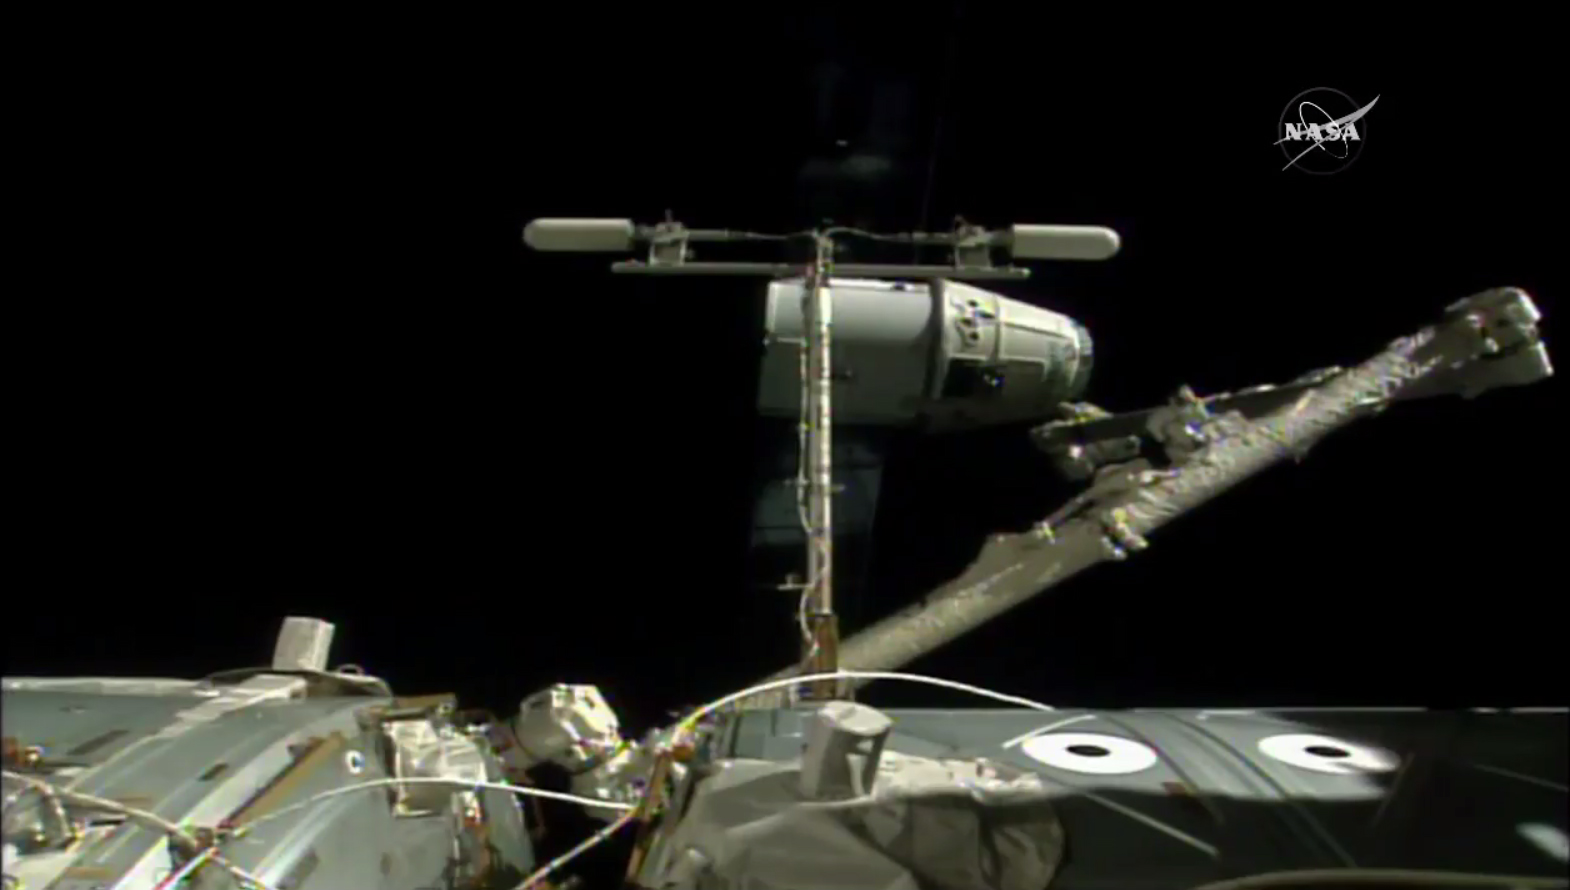 An unmanned SpaceX Dragon cargo ship is released back into space by a robotic arm on the International Space Station on Aug. 26, 2016. The Dragon will return 3,000 lbs. (1,360 kilograms) of science gear to Earth.